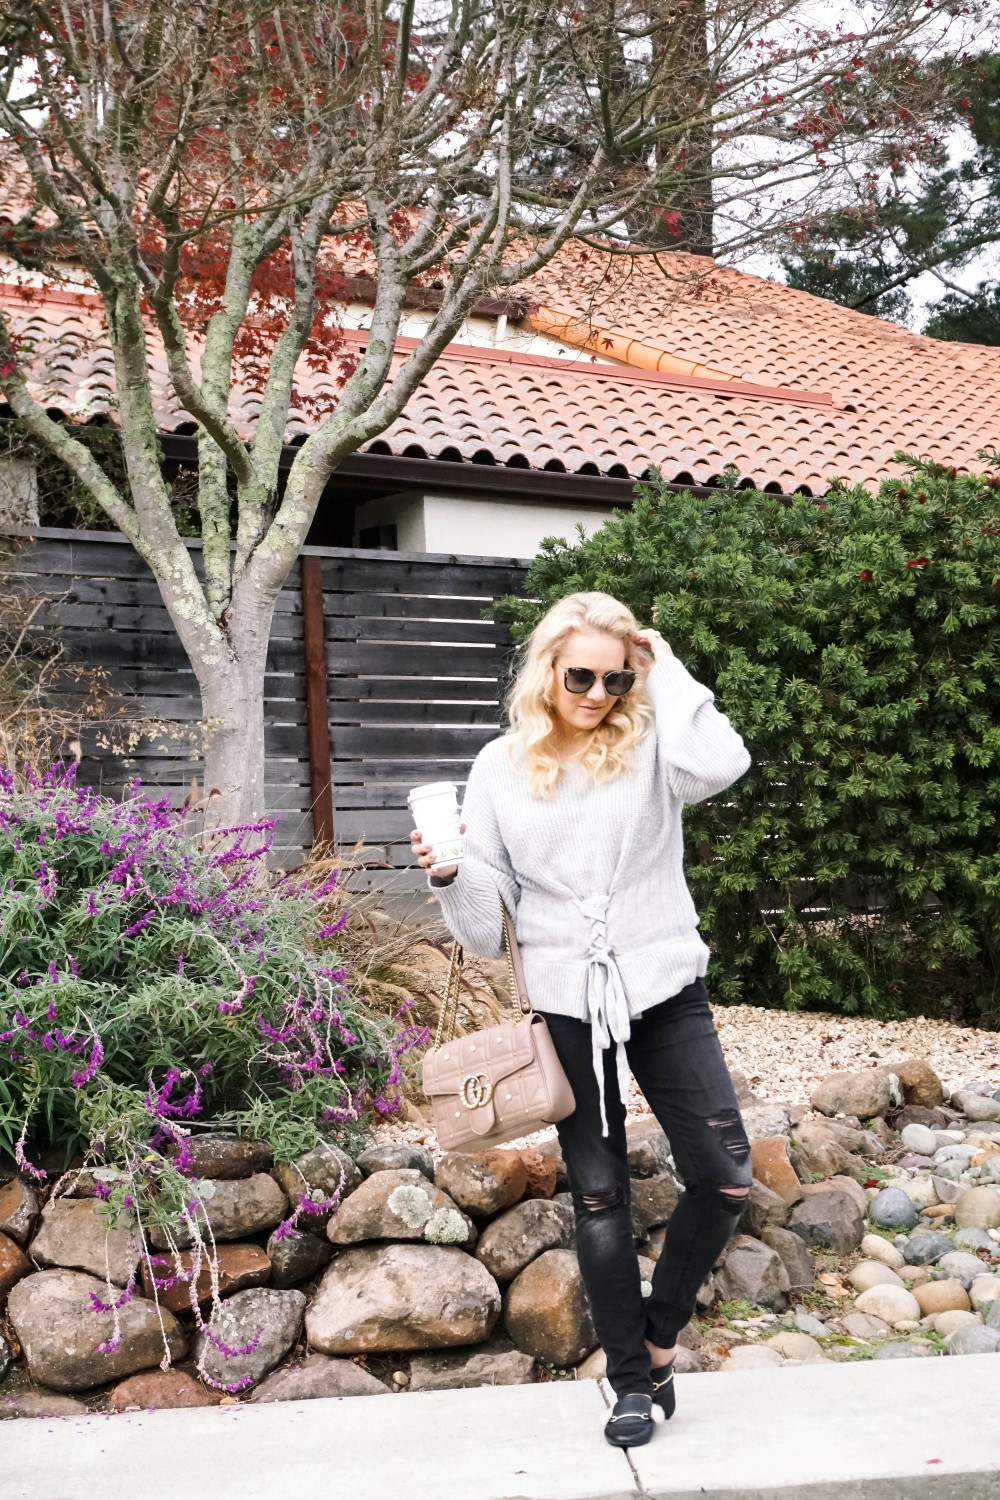 Trend Alert, Corset Sweaters and Tops, Corset Trend, Outfit Inspiration, Mom Style, Bay Area Fashion Blogger, Have Need Want